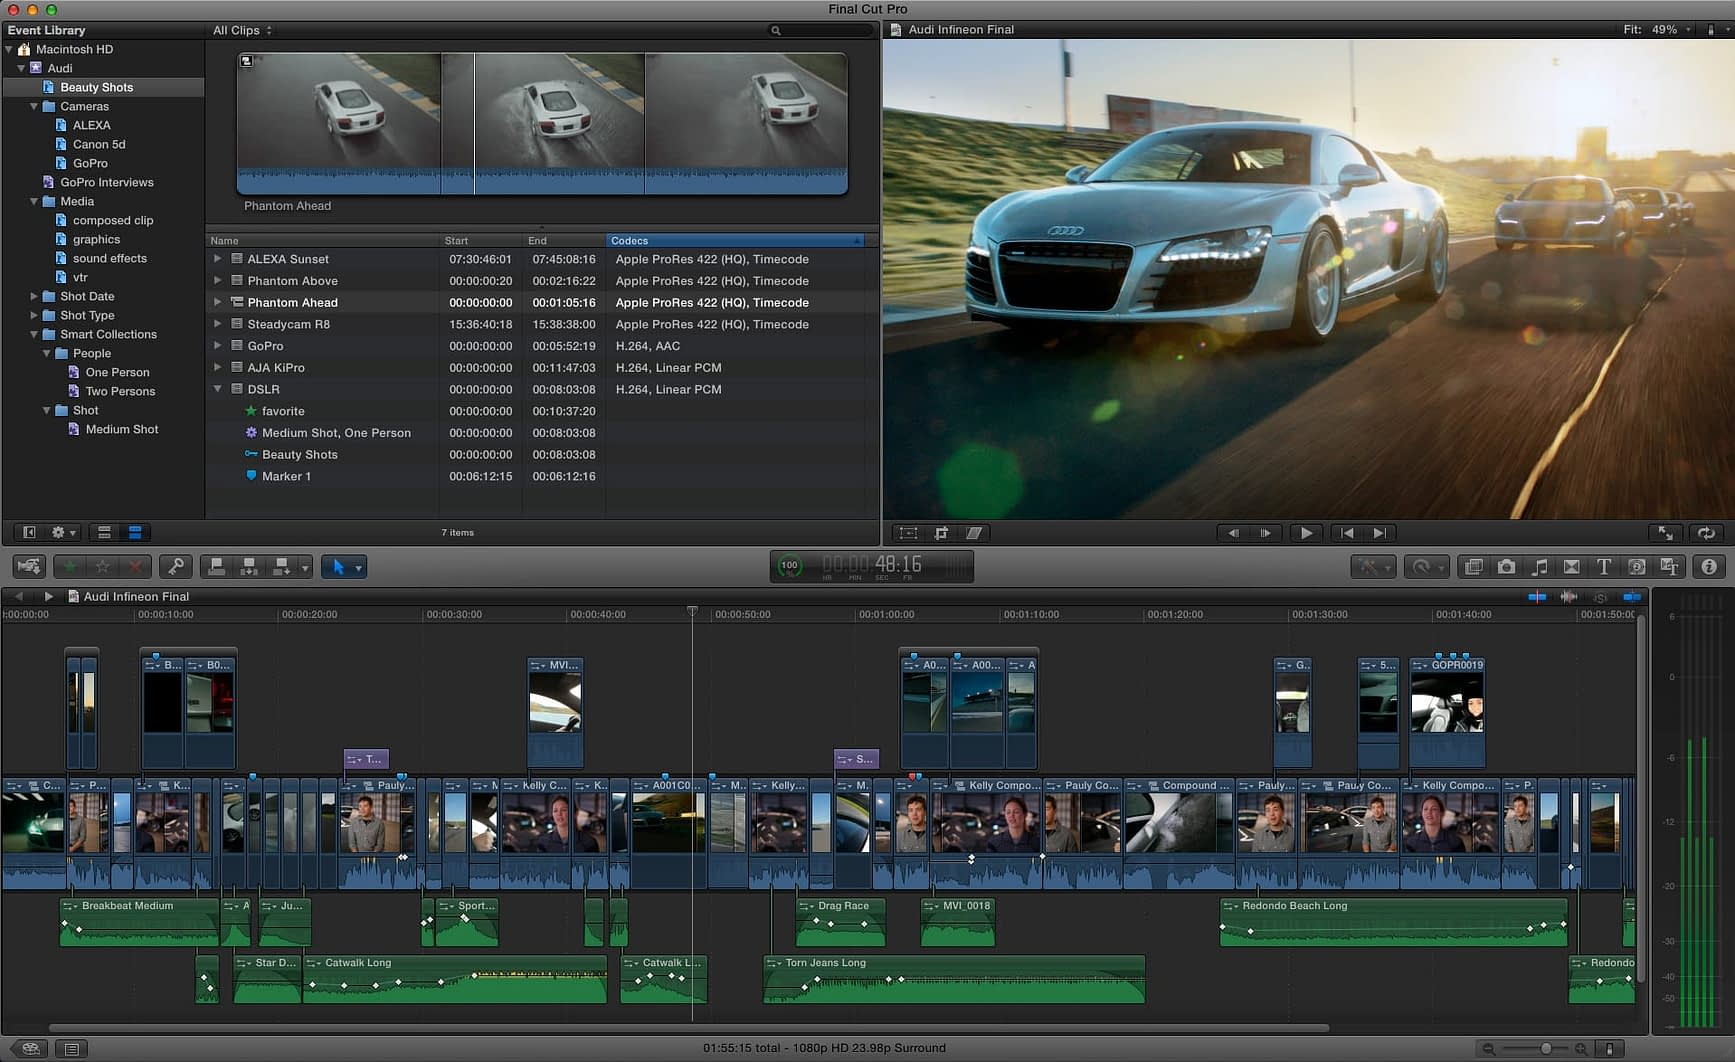 Best Professional Video Editing Software? Our Top 6 NLEs (August 2019)